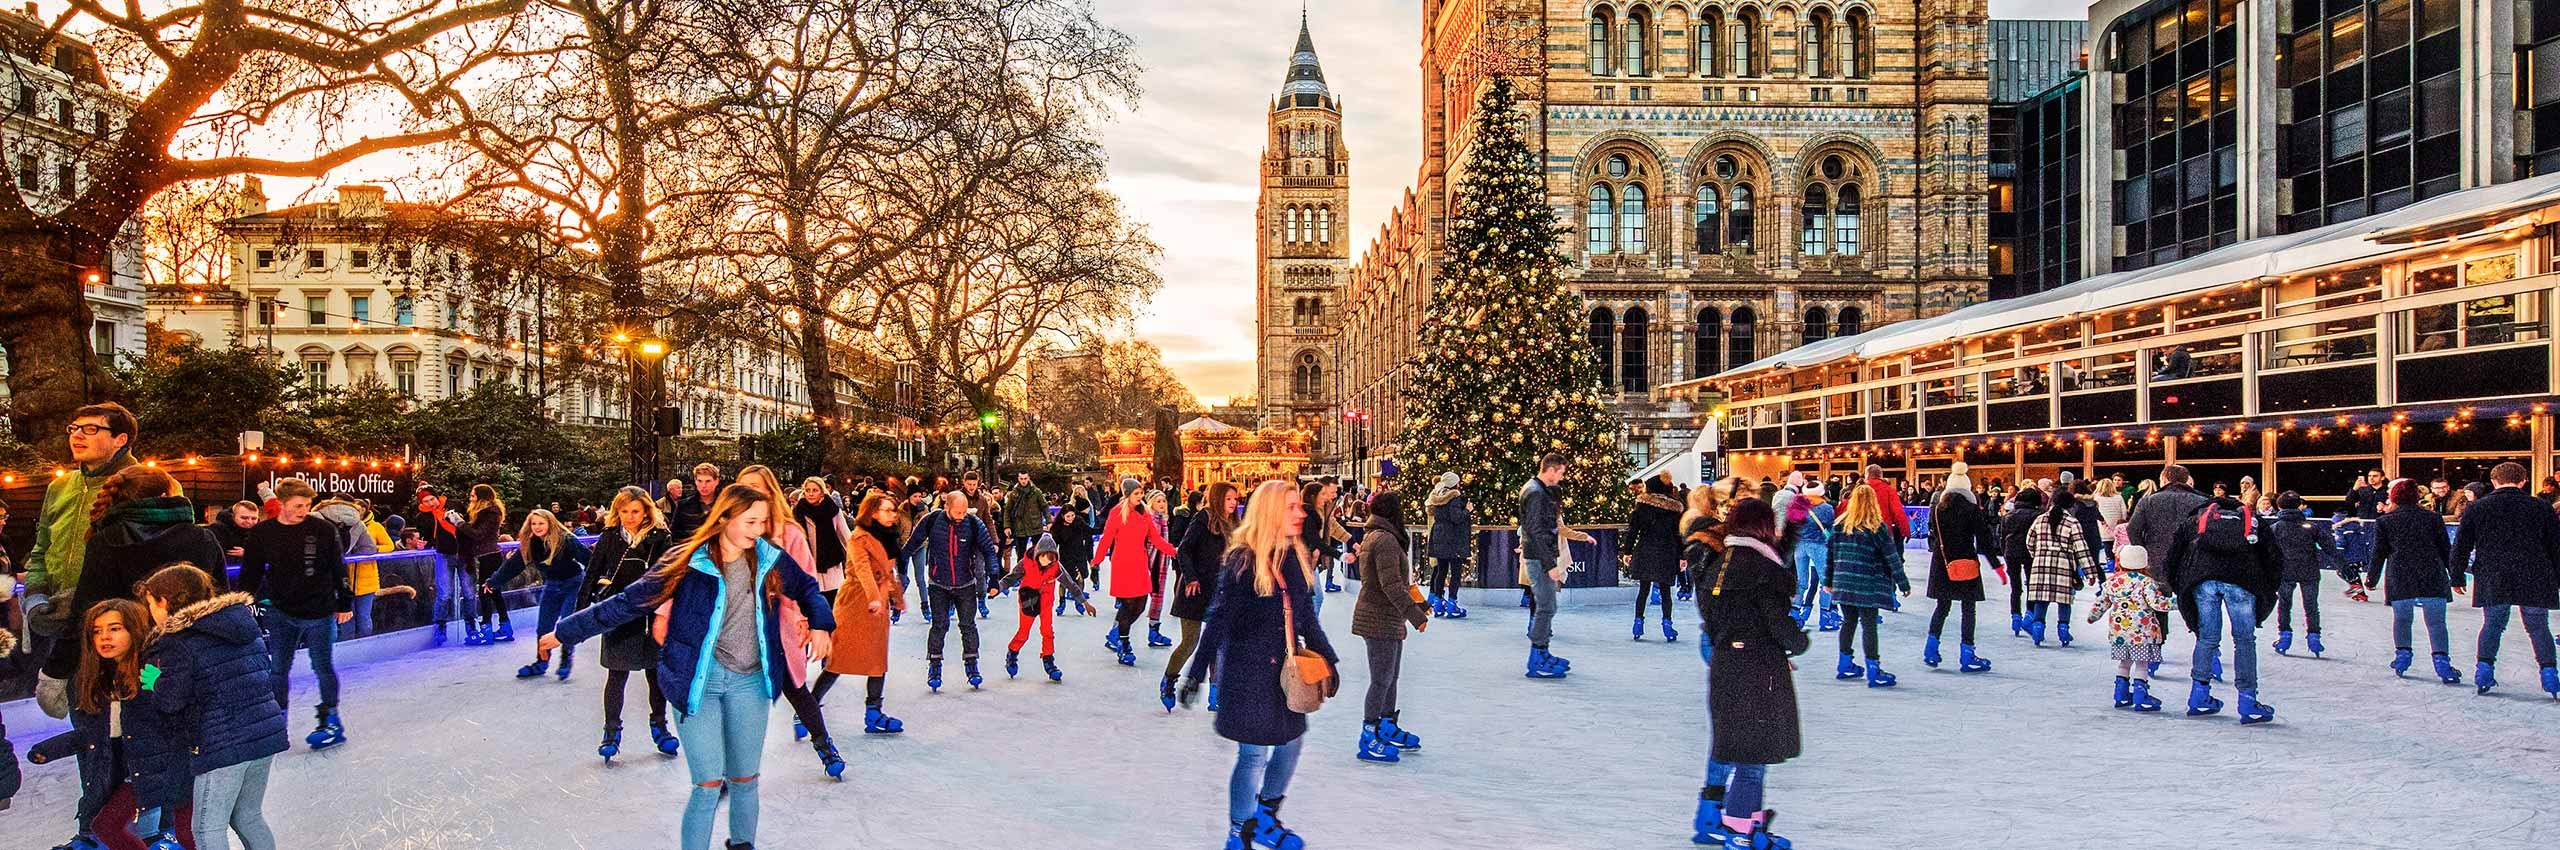 BVH-20643877 | UK/London, Ice Rink in front of the Natural History Museum in December | © Reinhard Schmid/4Corners